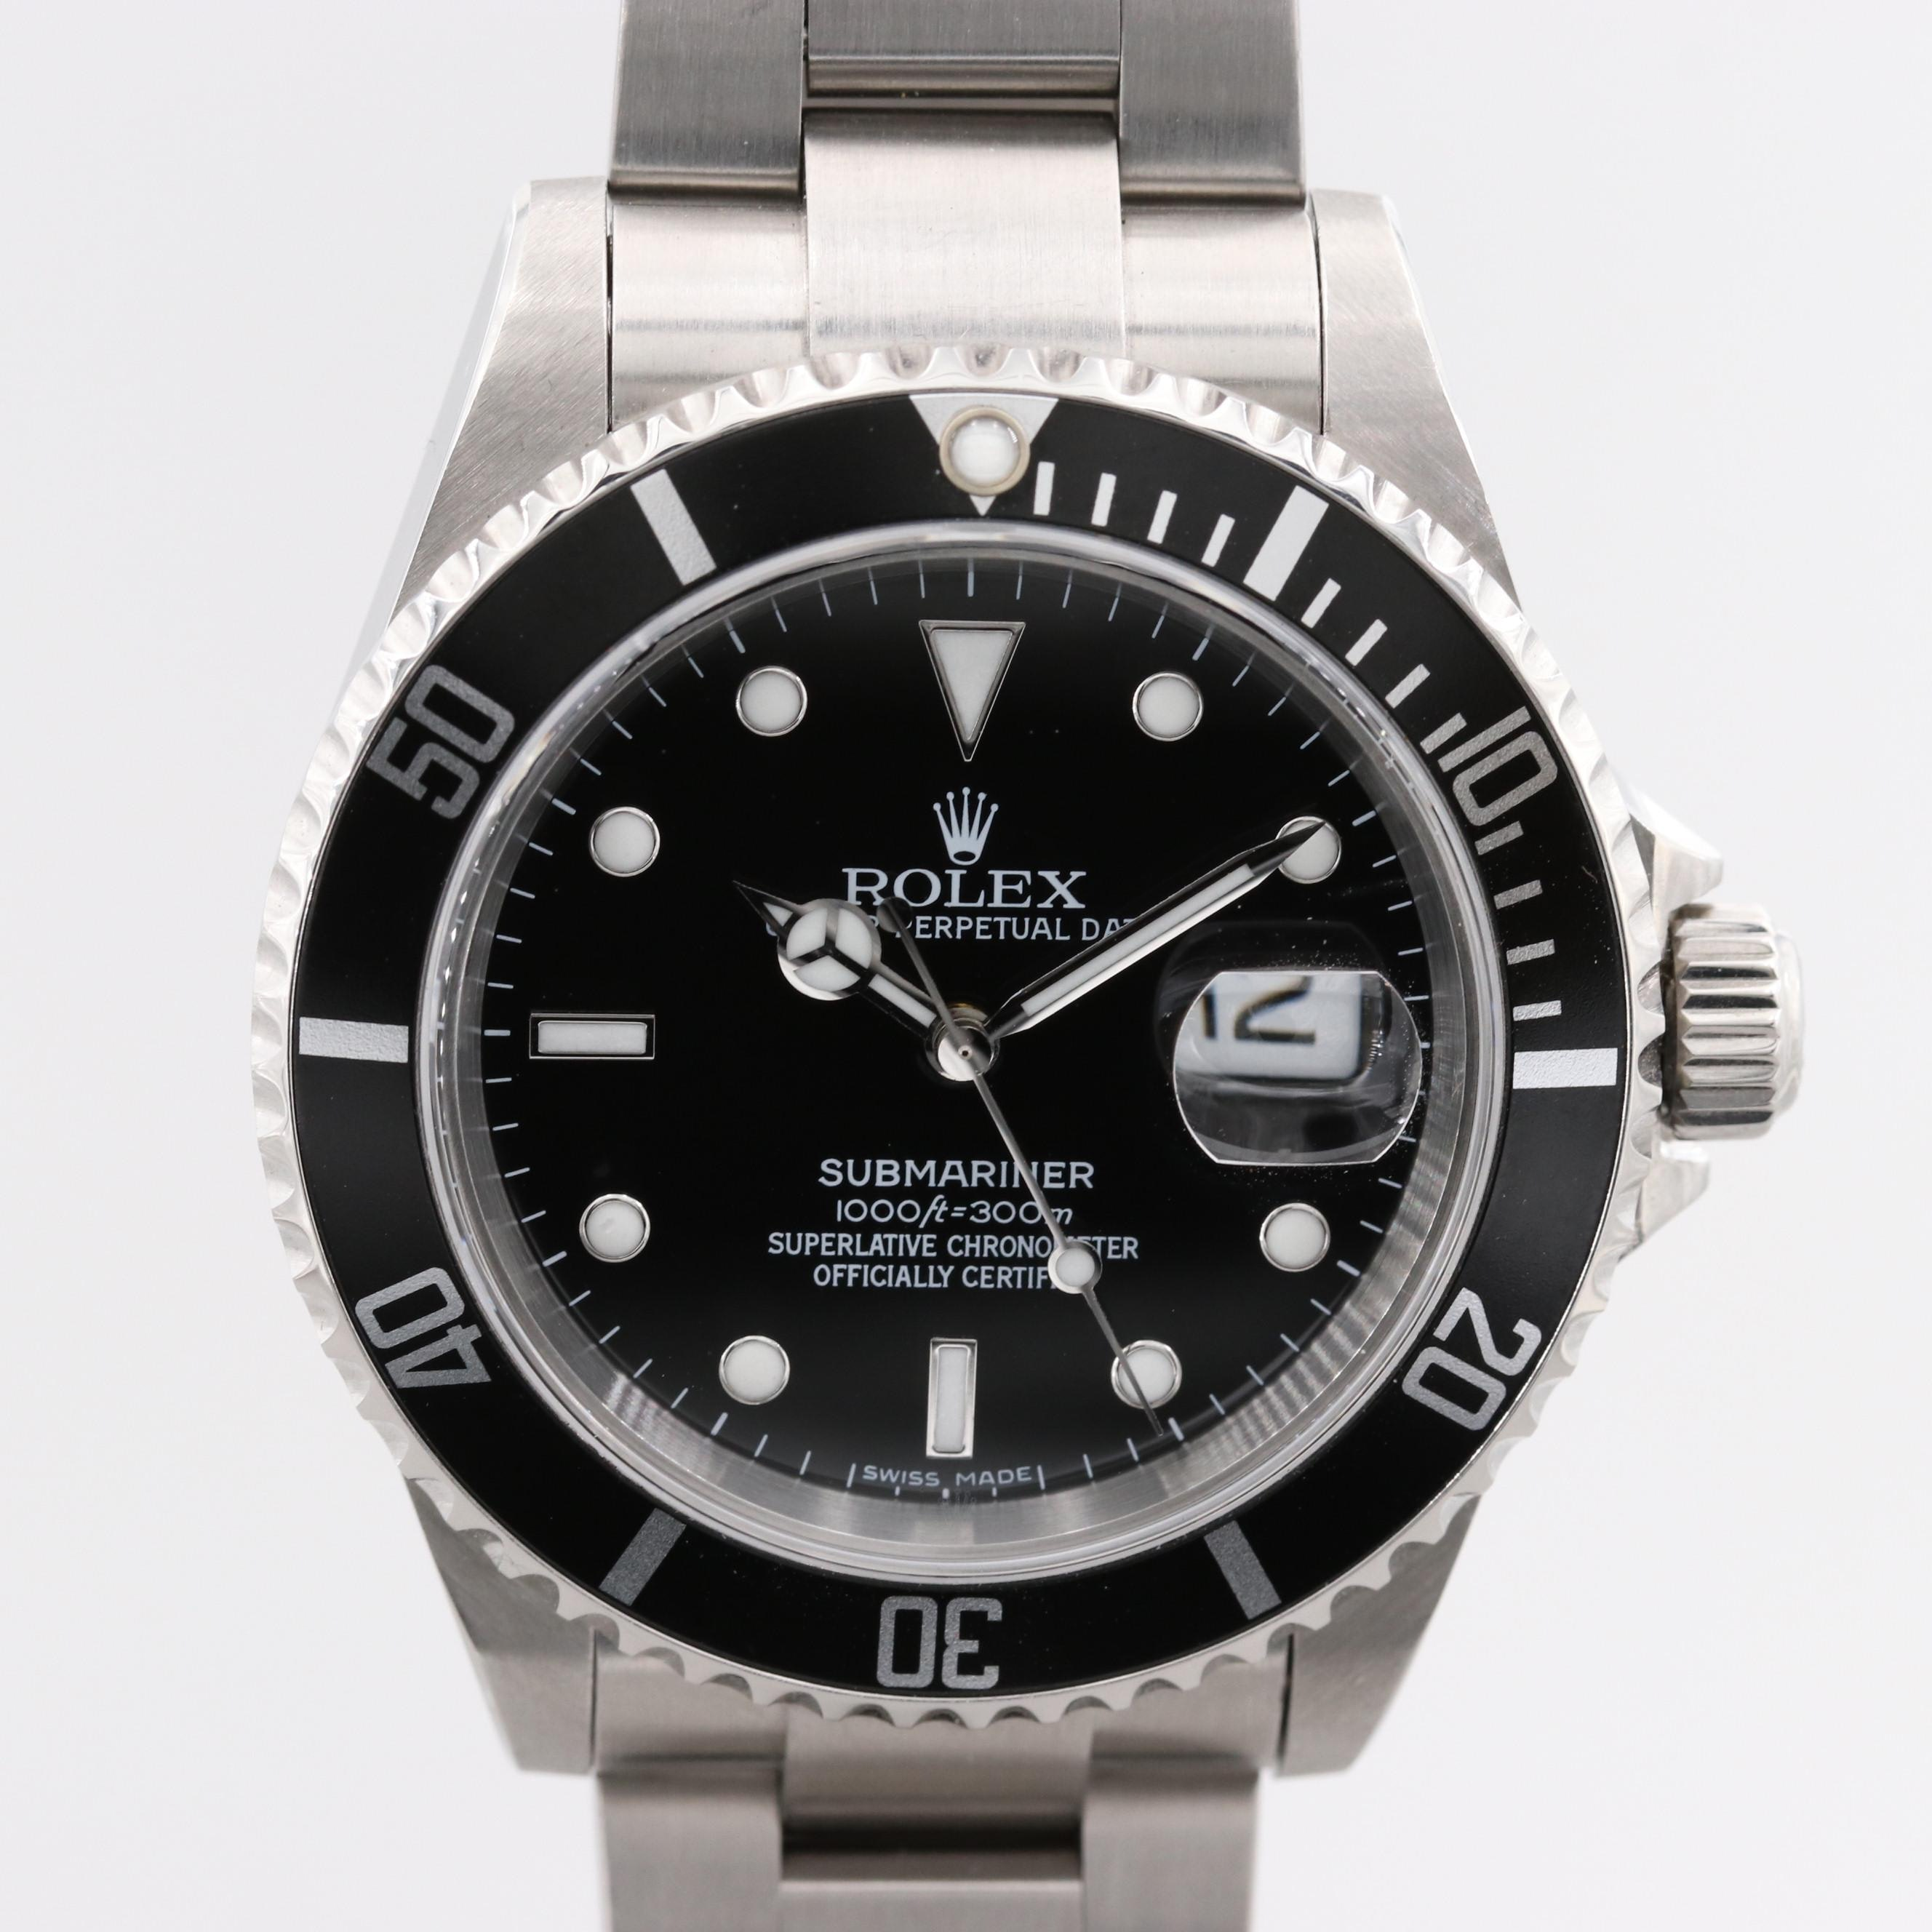 Rolex Submariner Stainless Steel Automatic Wristwatch With Date, Circa 2007